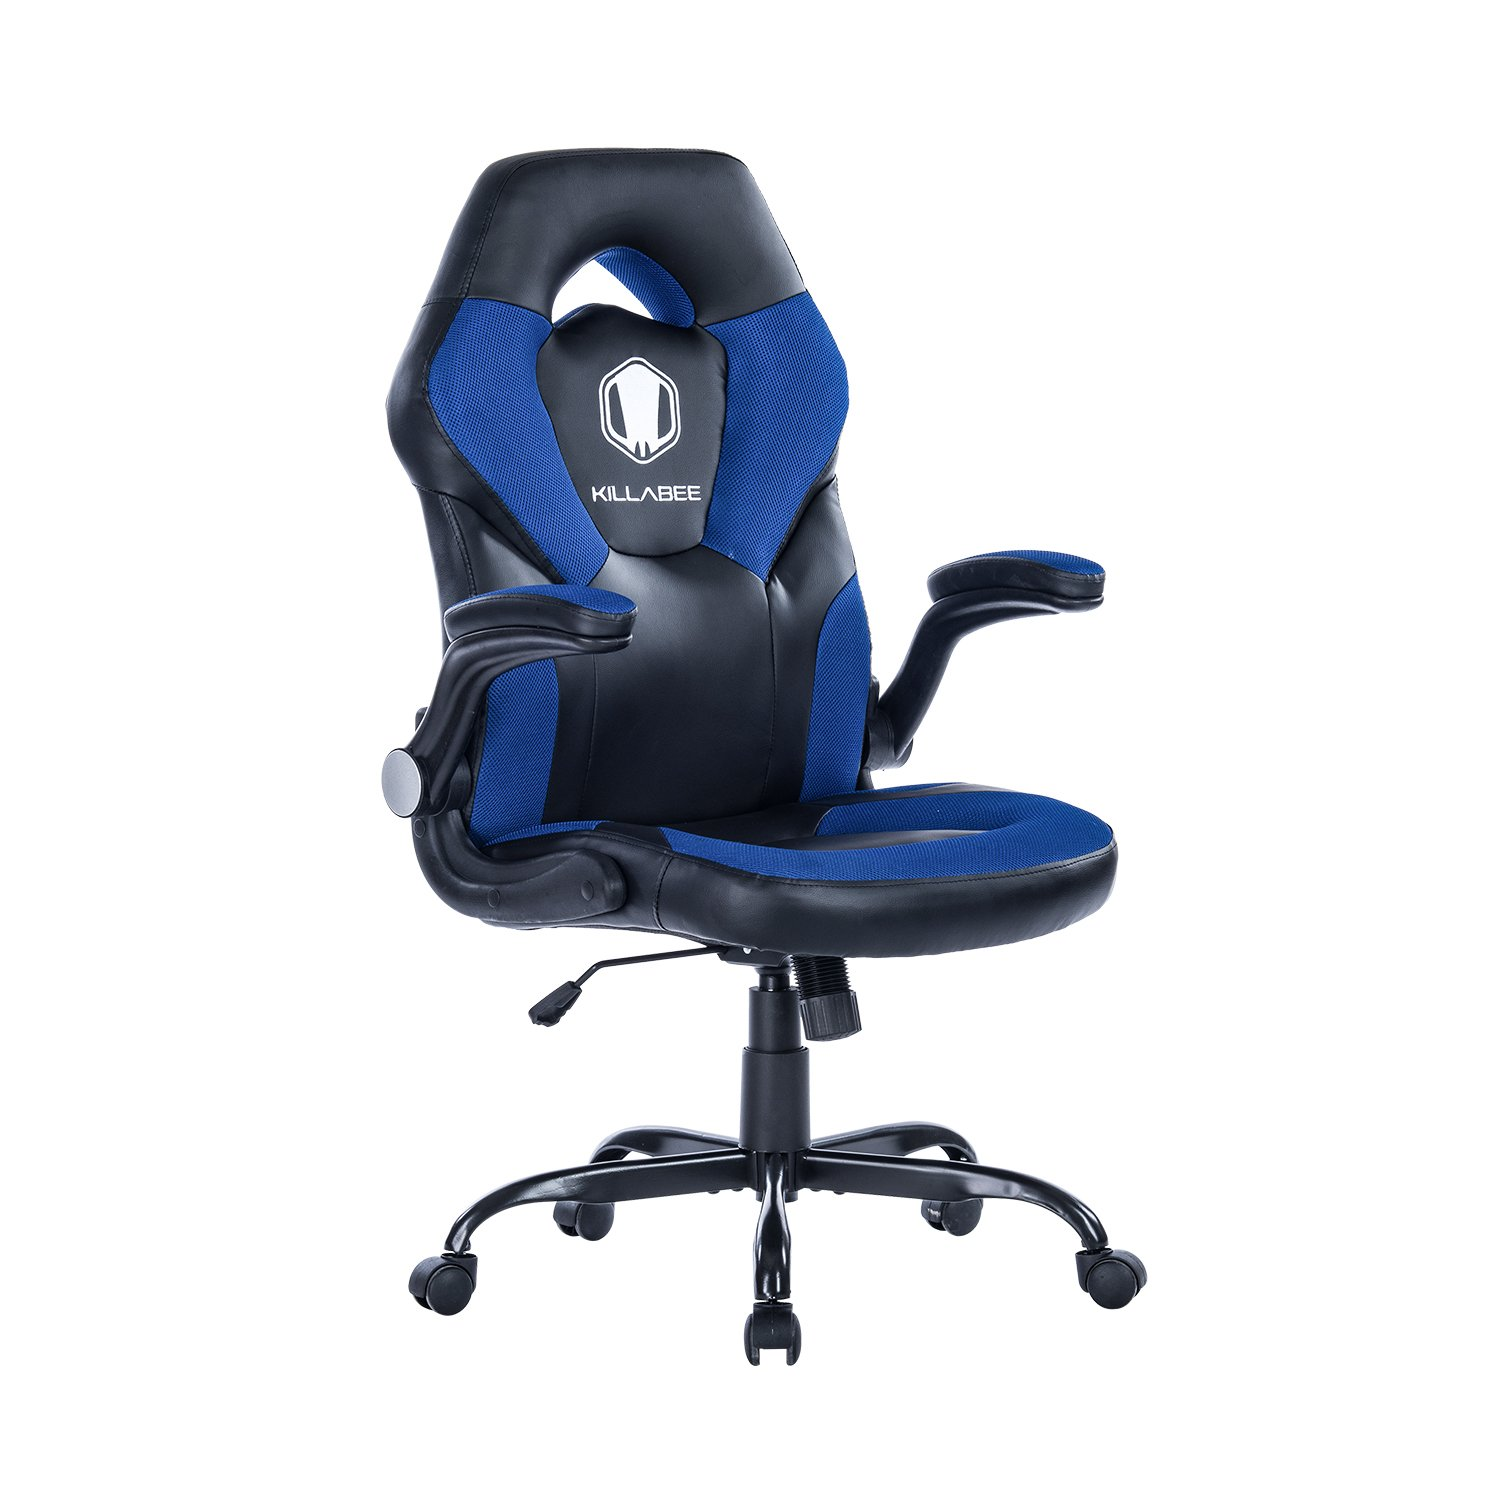 VON RACER Racing Style Gaming Chair - Flip-Up Arms Ergonomic Leather & Mesh Computer Desk Office Chair (Blue-9016)